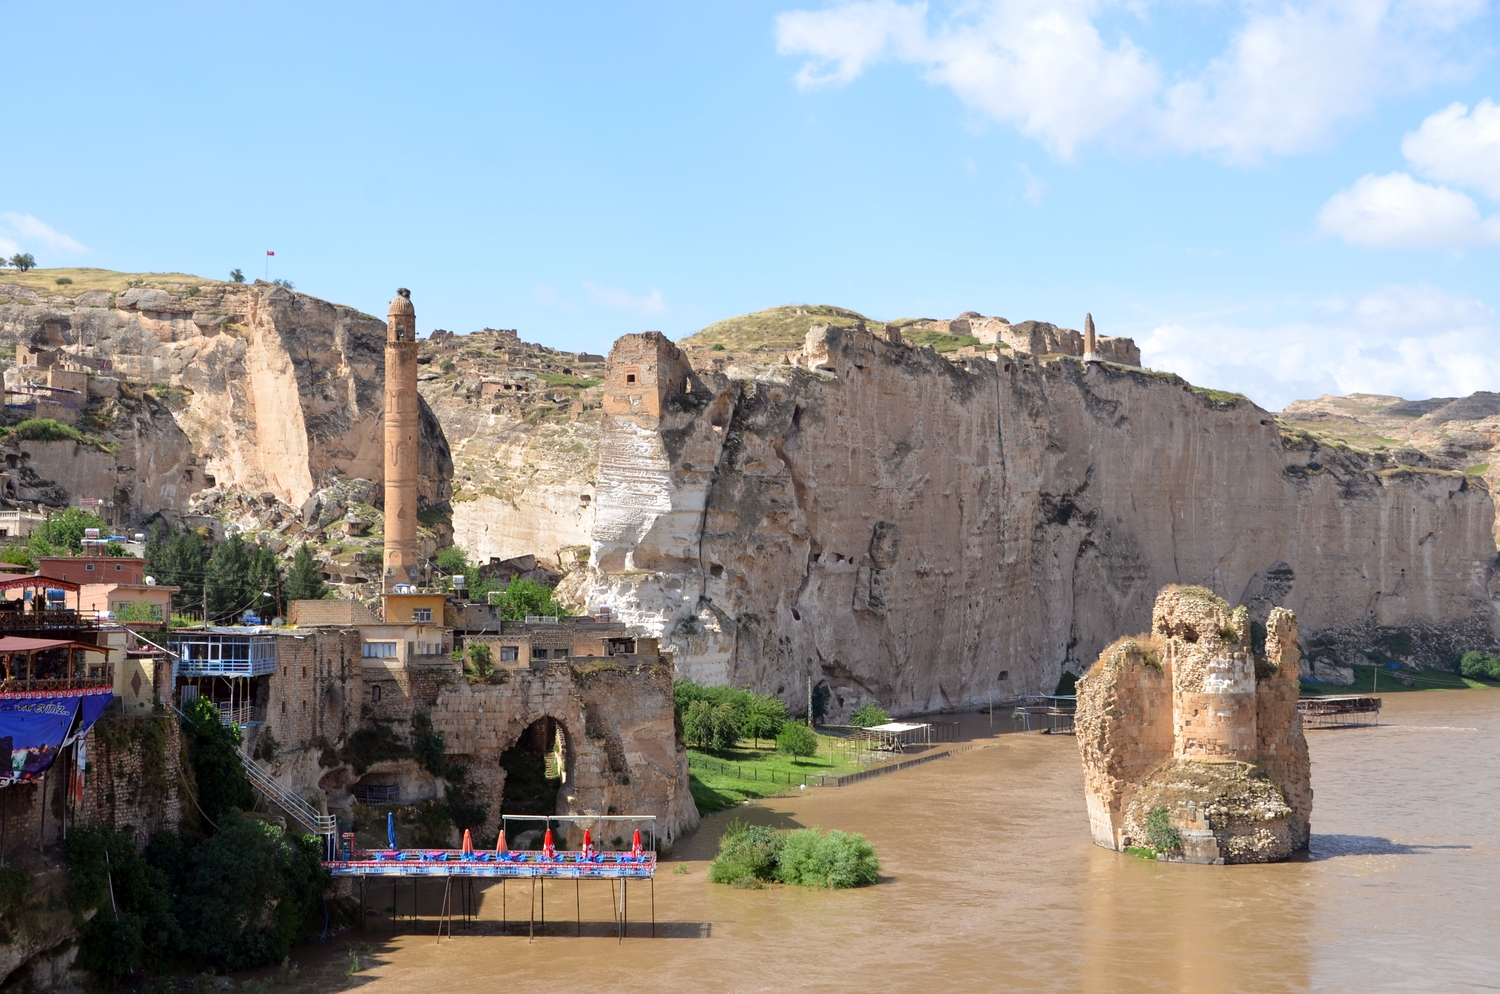 Ancient settlement of Hasankeyf, soon to disappear underwater